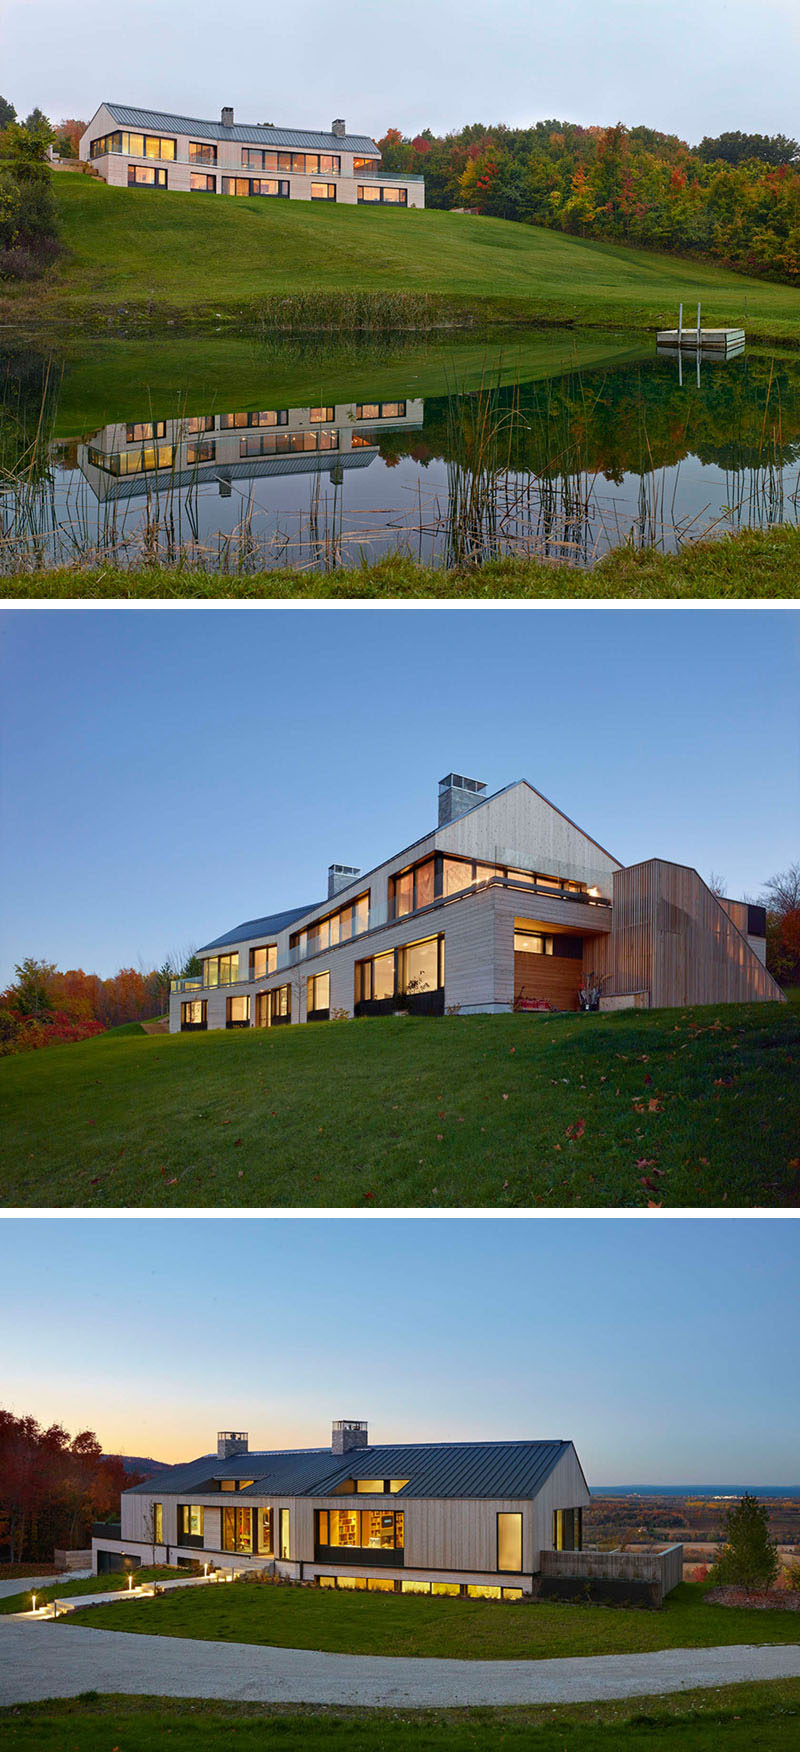 This house is positioned in a clearing between a boreal forest, that opens up to allow the house to enjoy panoramic views of Georgian Bay in the distance.